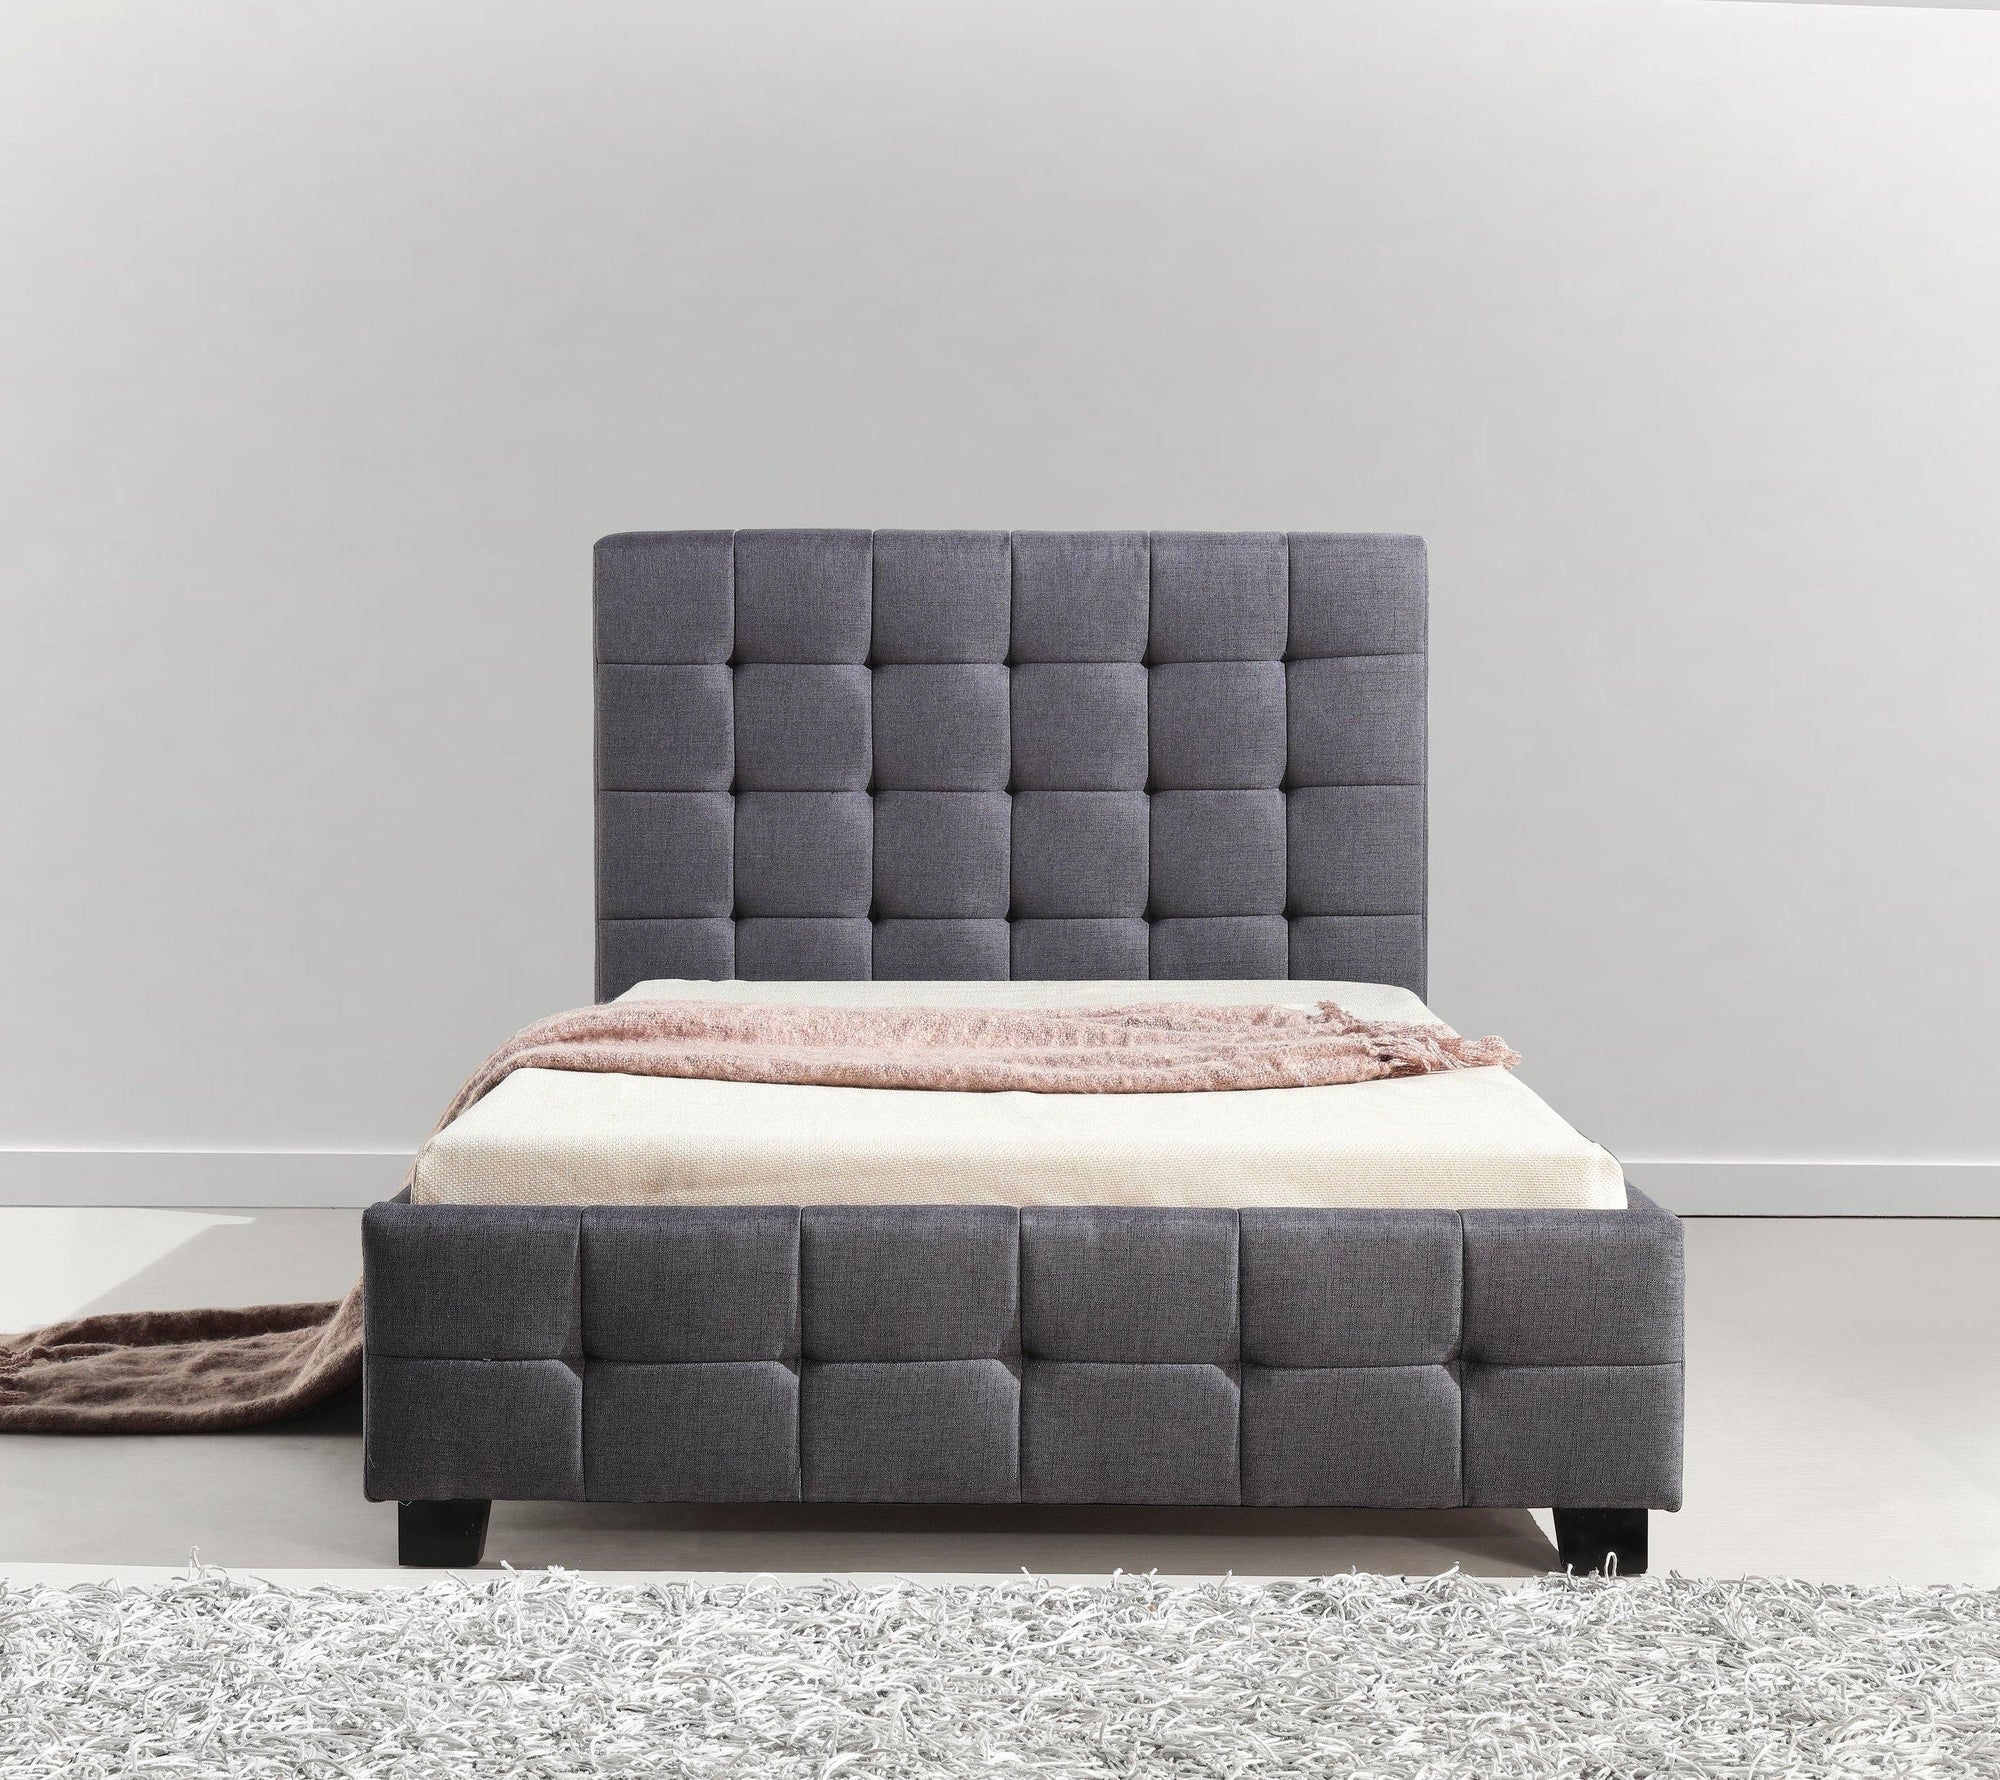 Palermo Linen Fabric Deluxe Bed Frame Grey King Single - Evopia